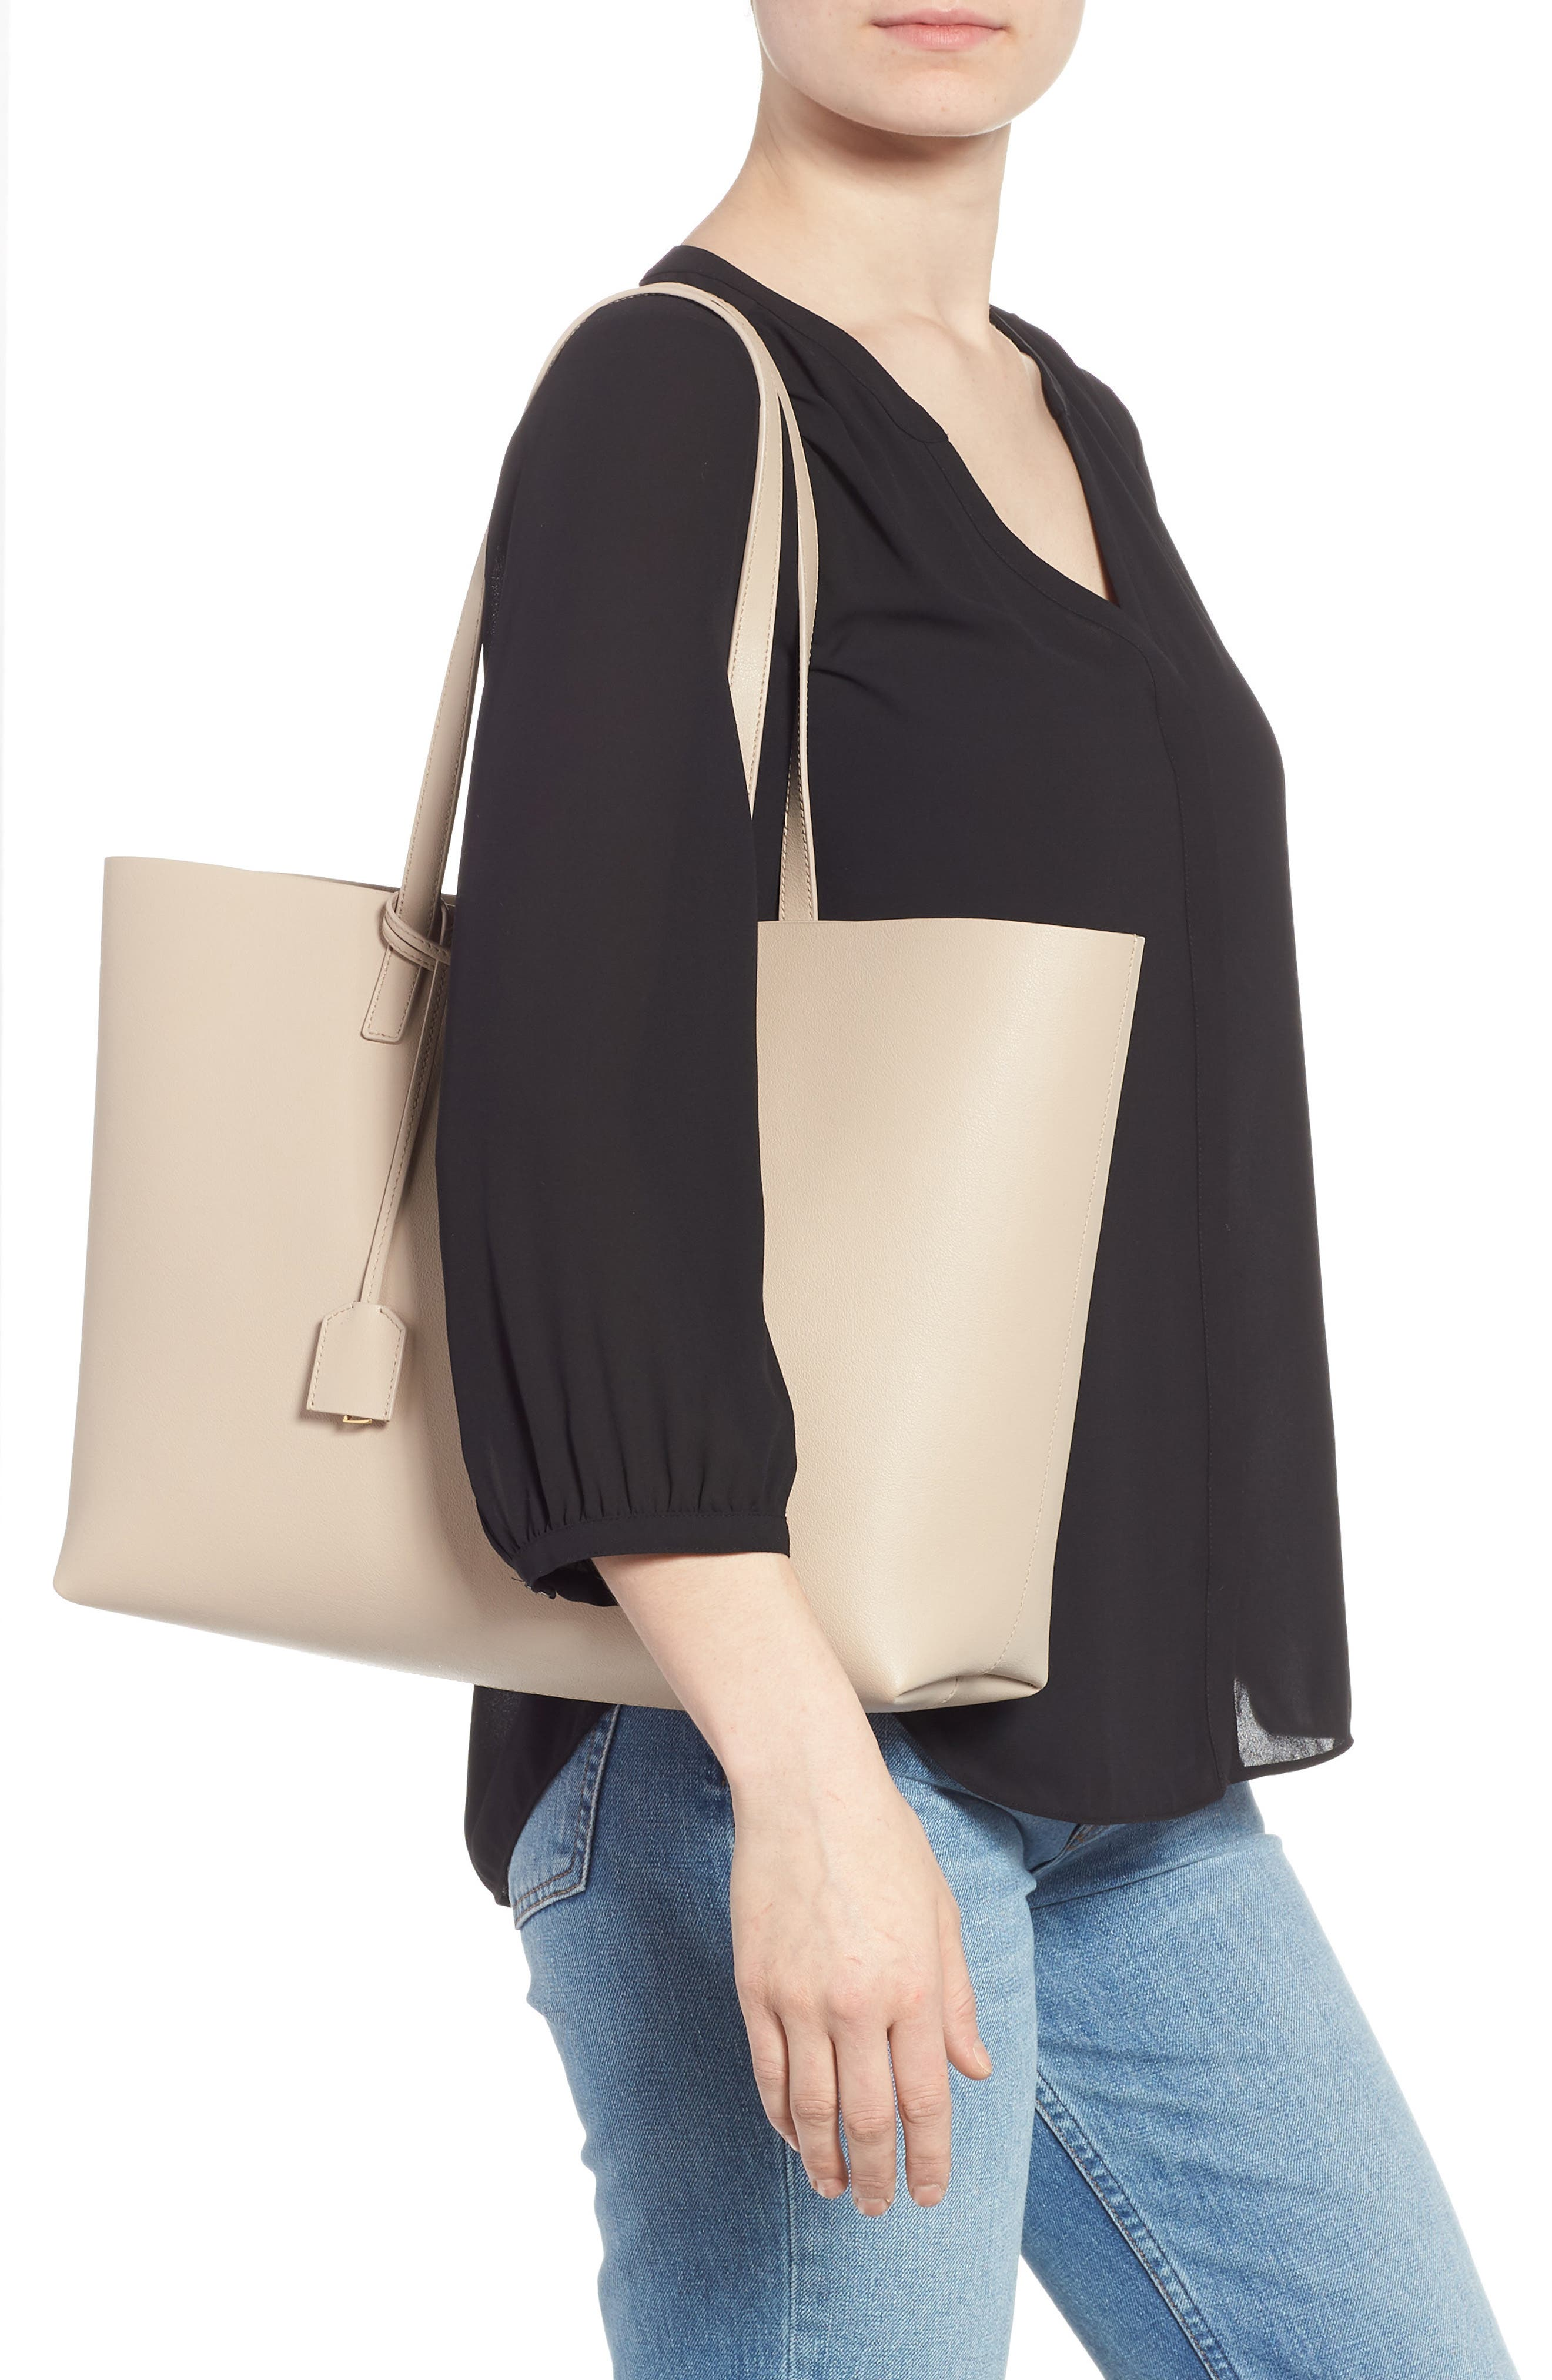 'Shopping' Leather Tote,                             Alternate thumbnail 2, color,                             CREMASOFT